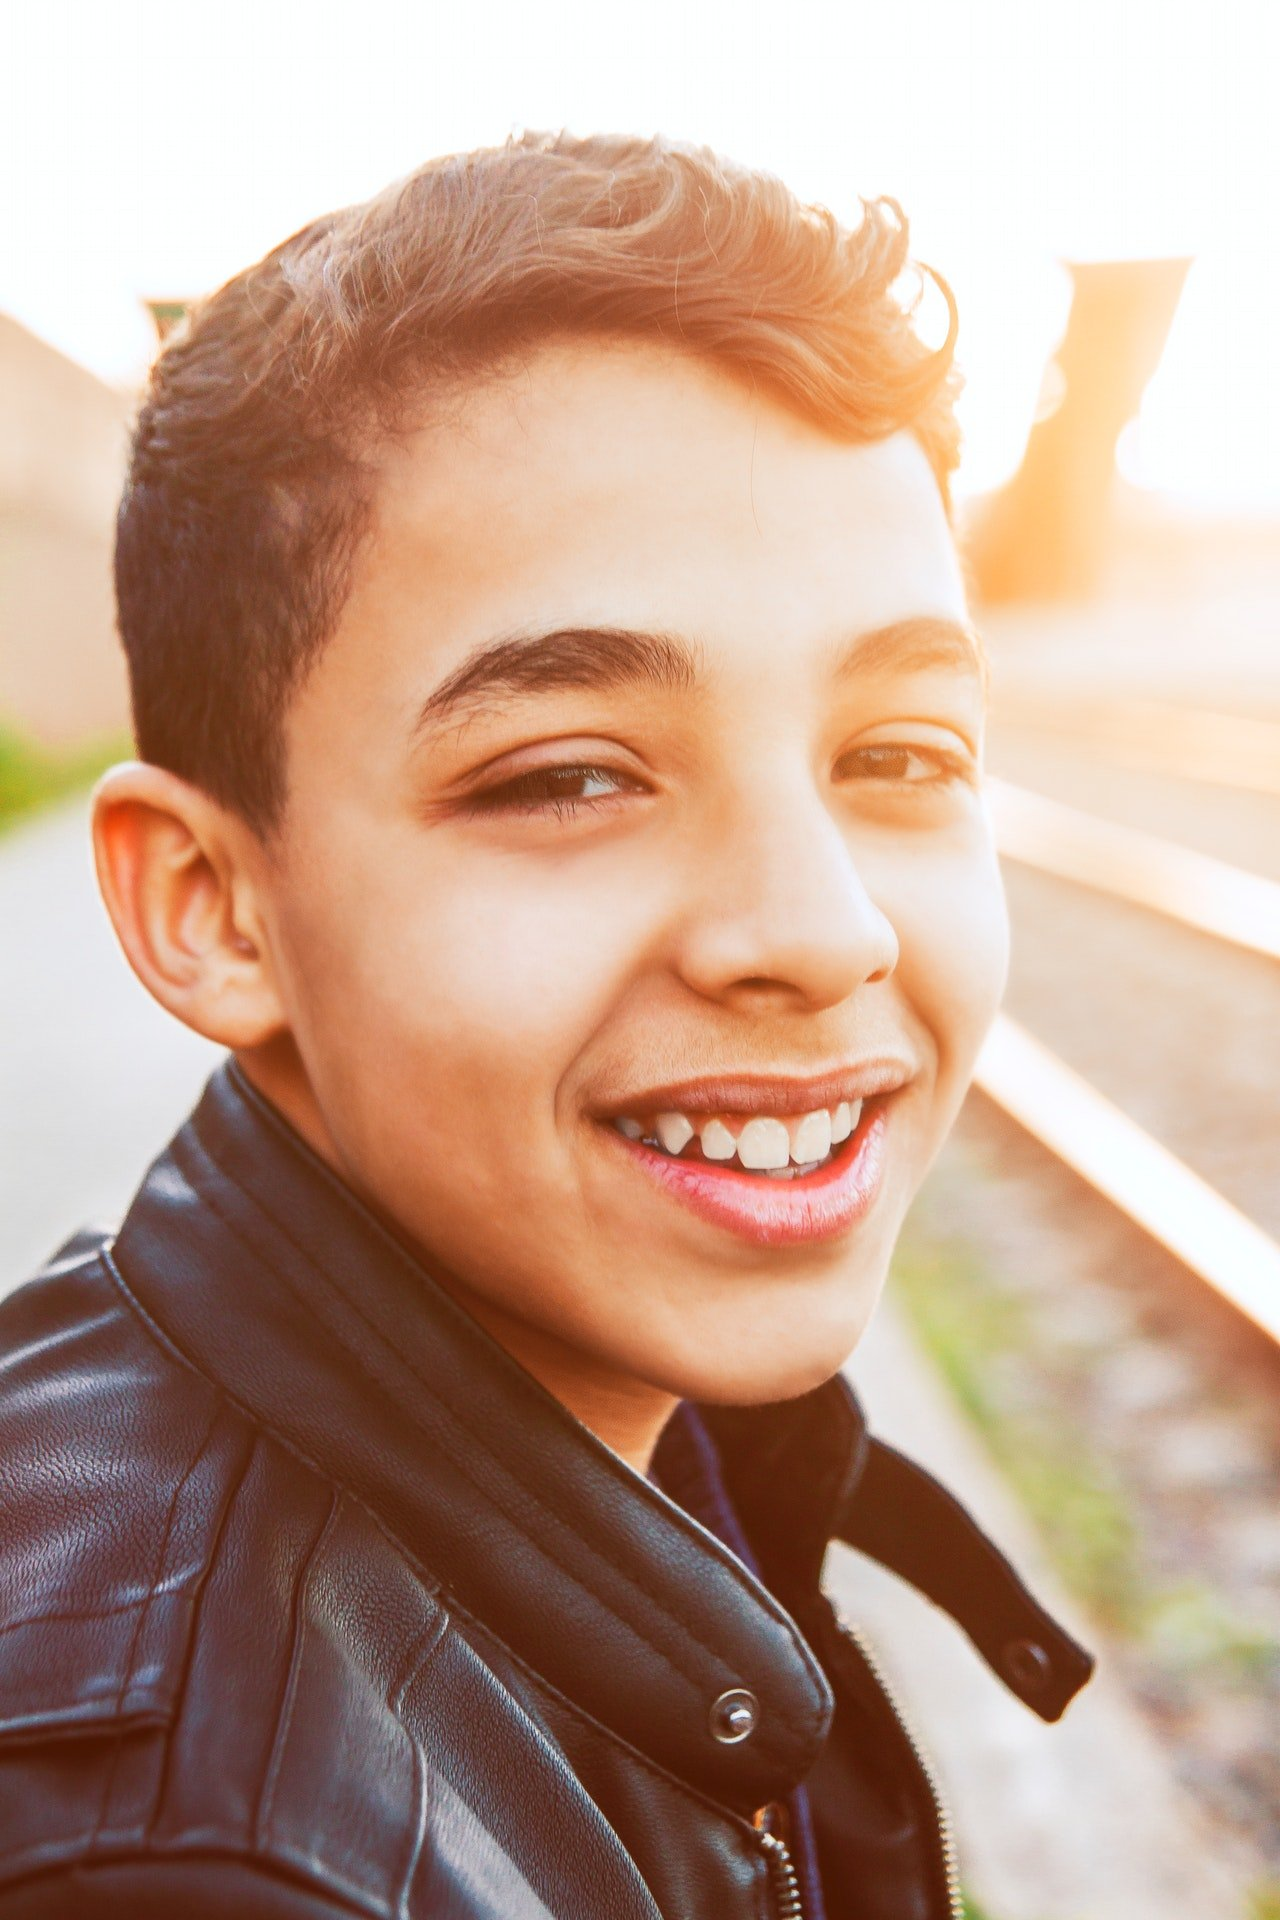 Photo of a young boy | Photo: Pexels